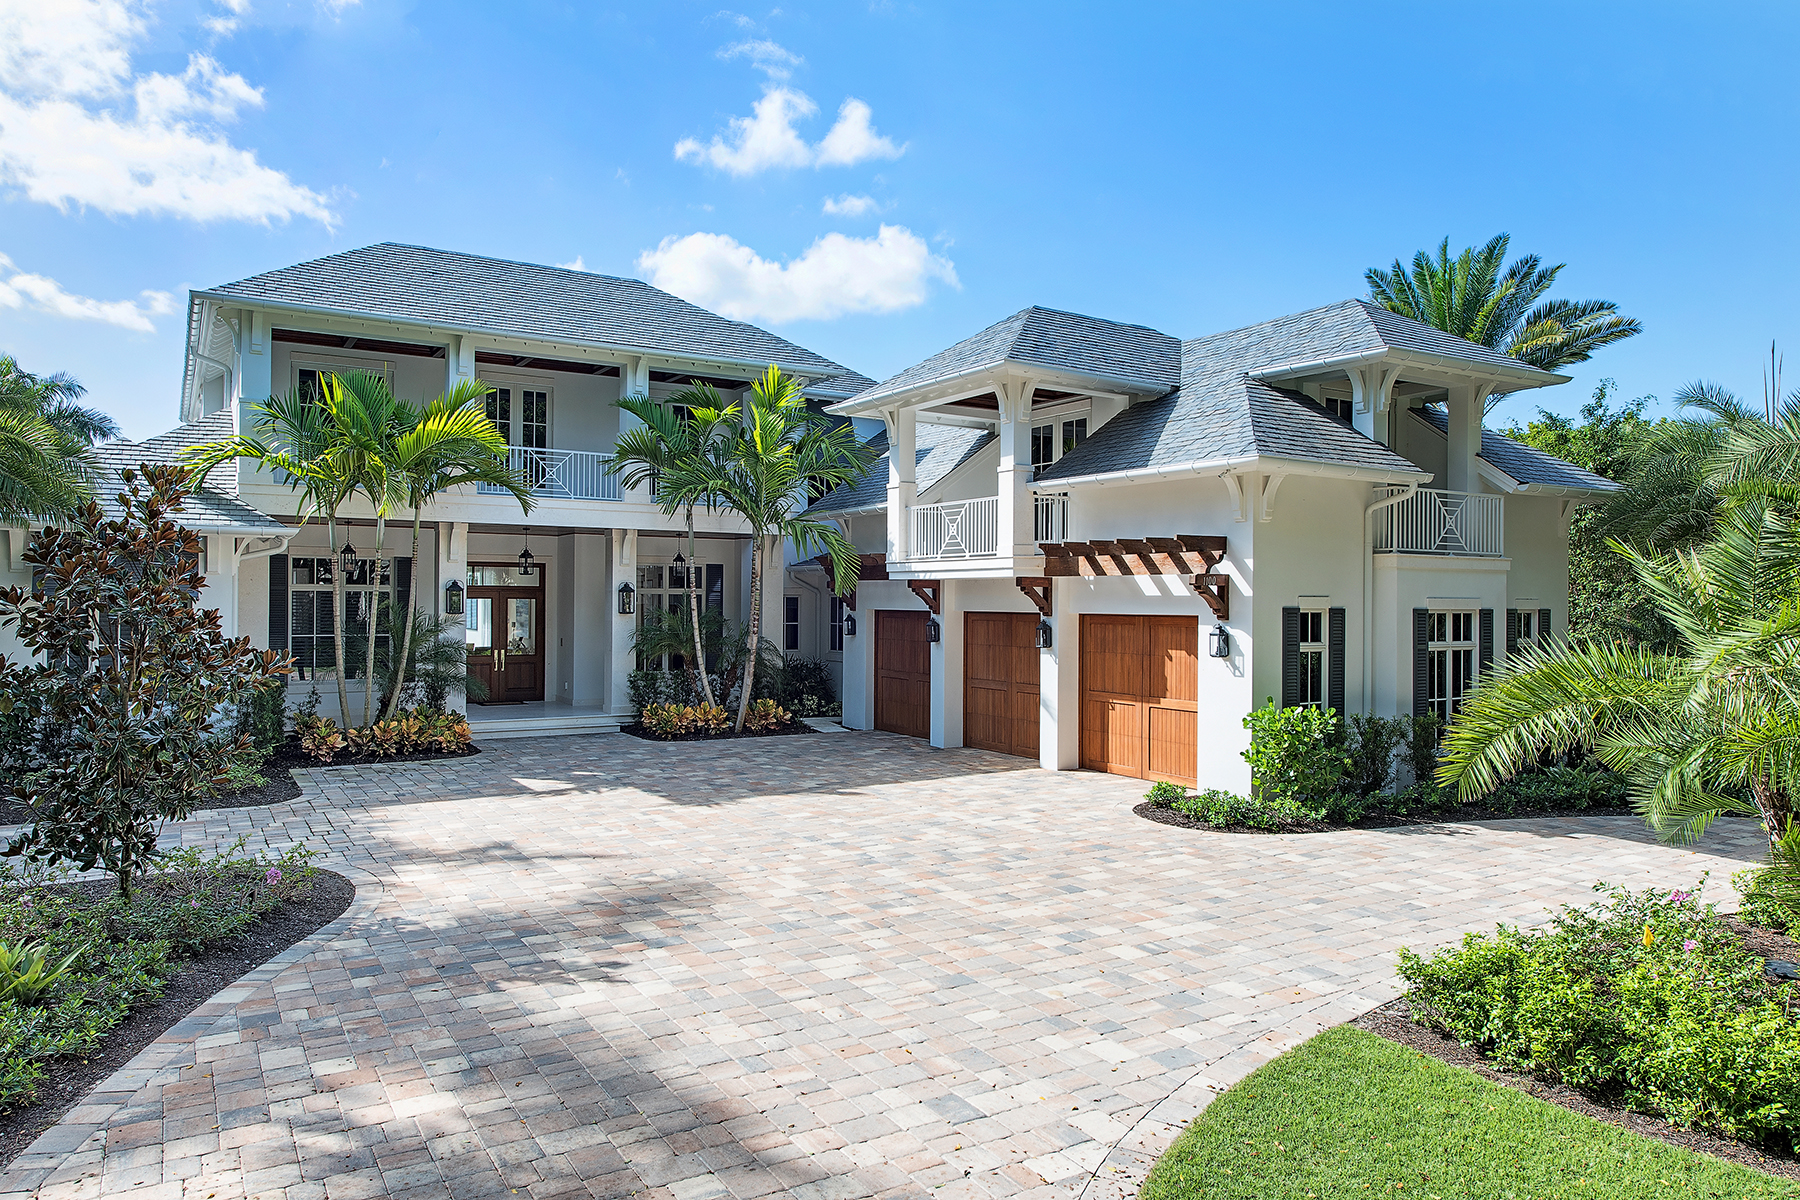 Casa Unifamiliar por un Venta en PORT ROYAL 1100 Galleon Dr Naples, Florida 34102 Estados Unidos